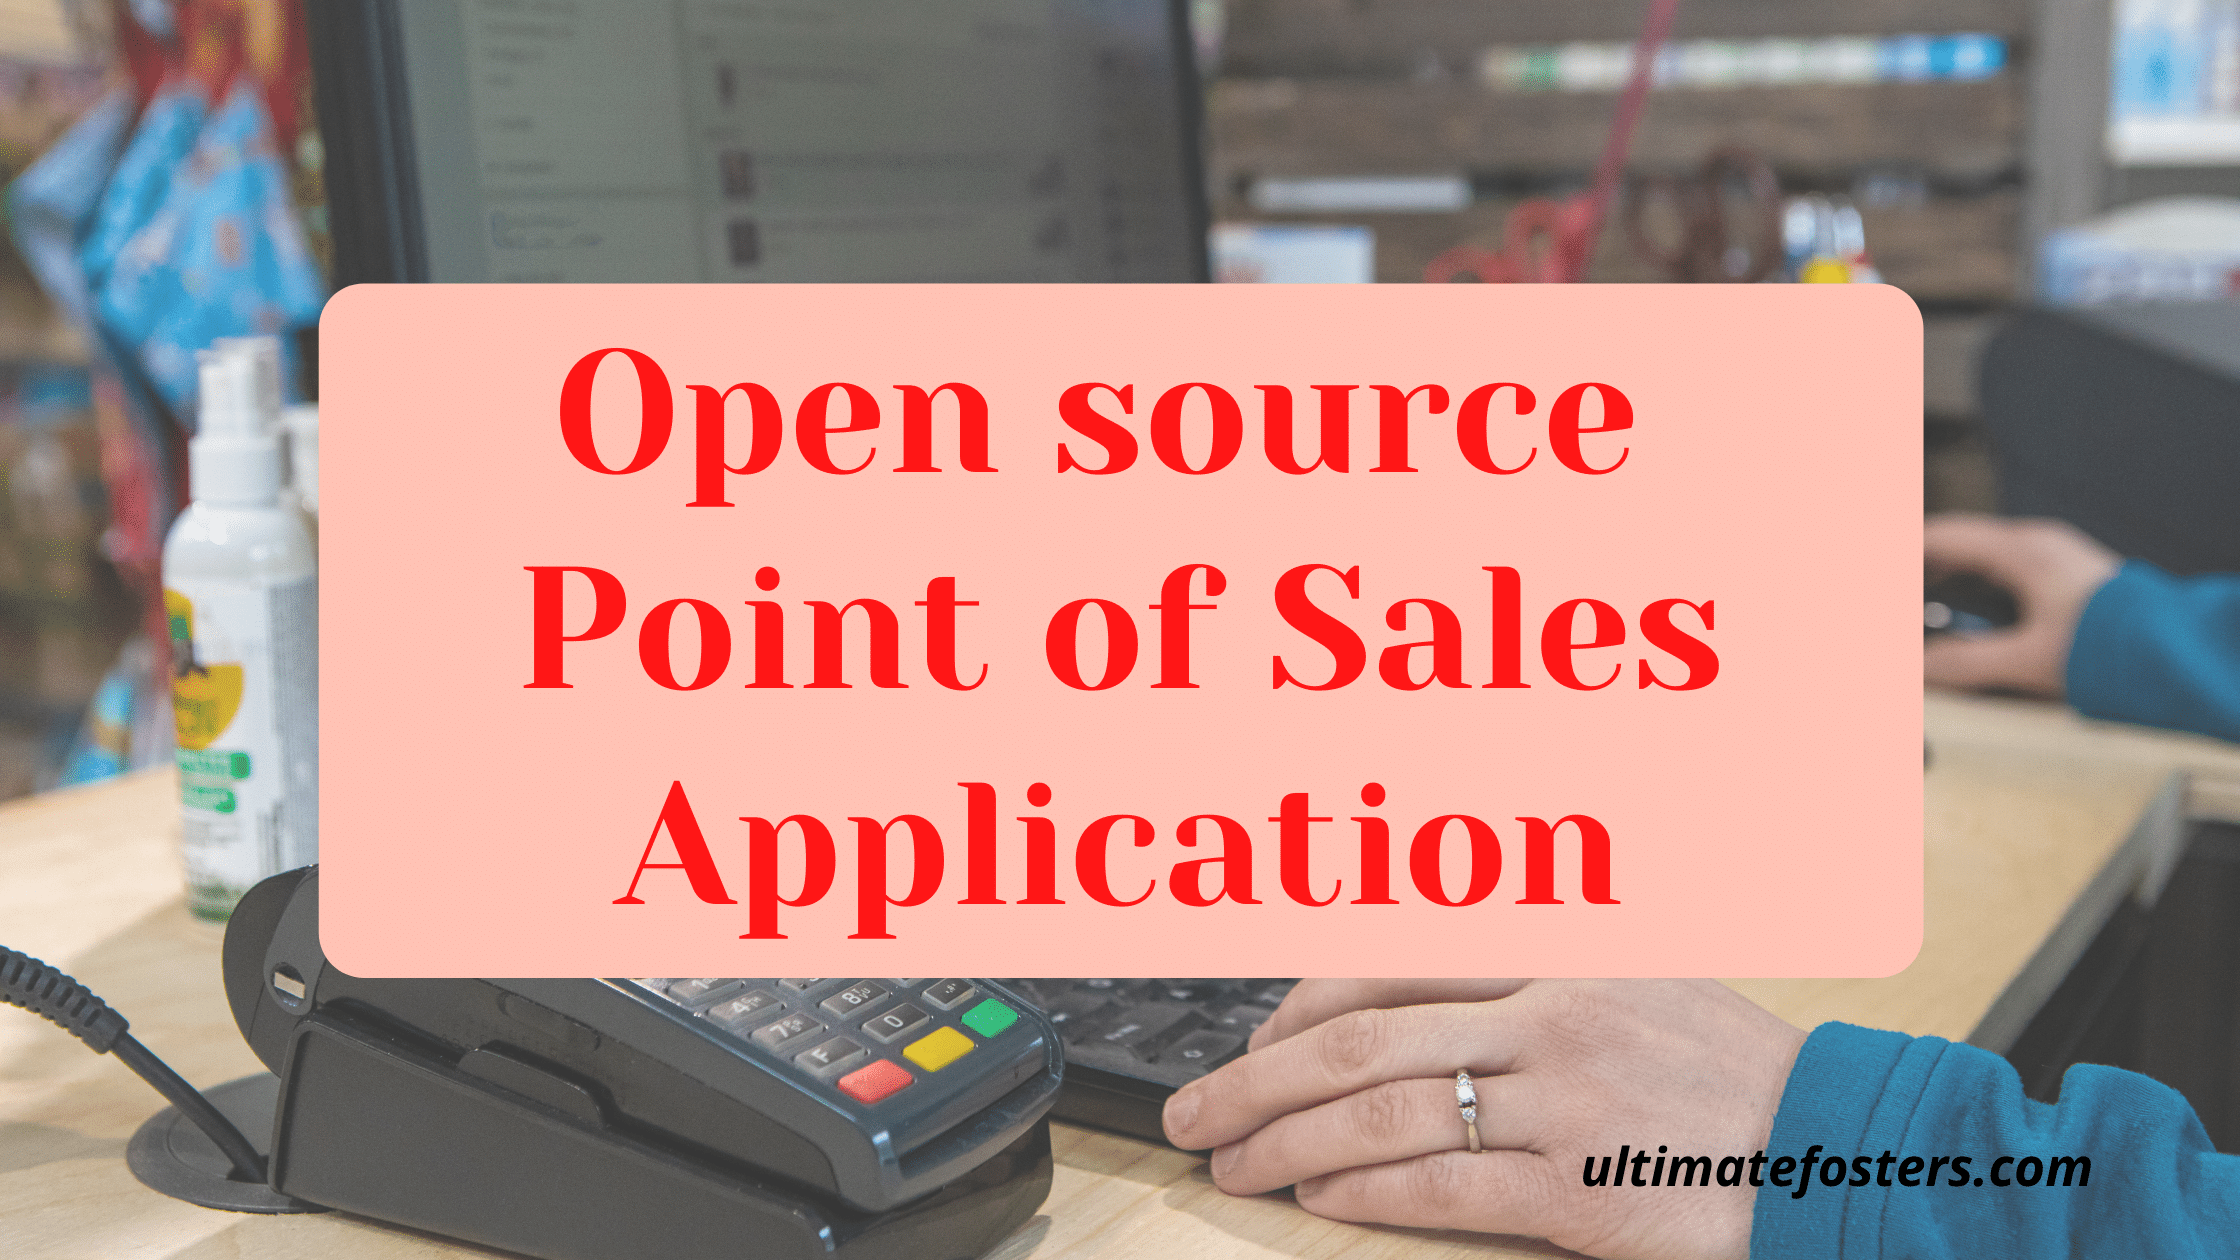 Open-source-point-of-sales-application